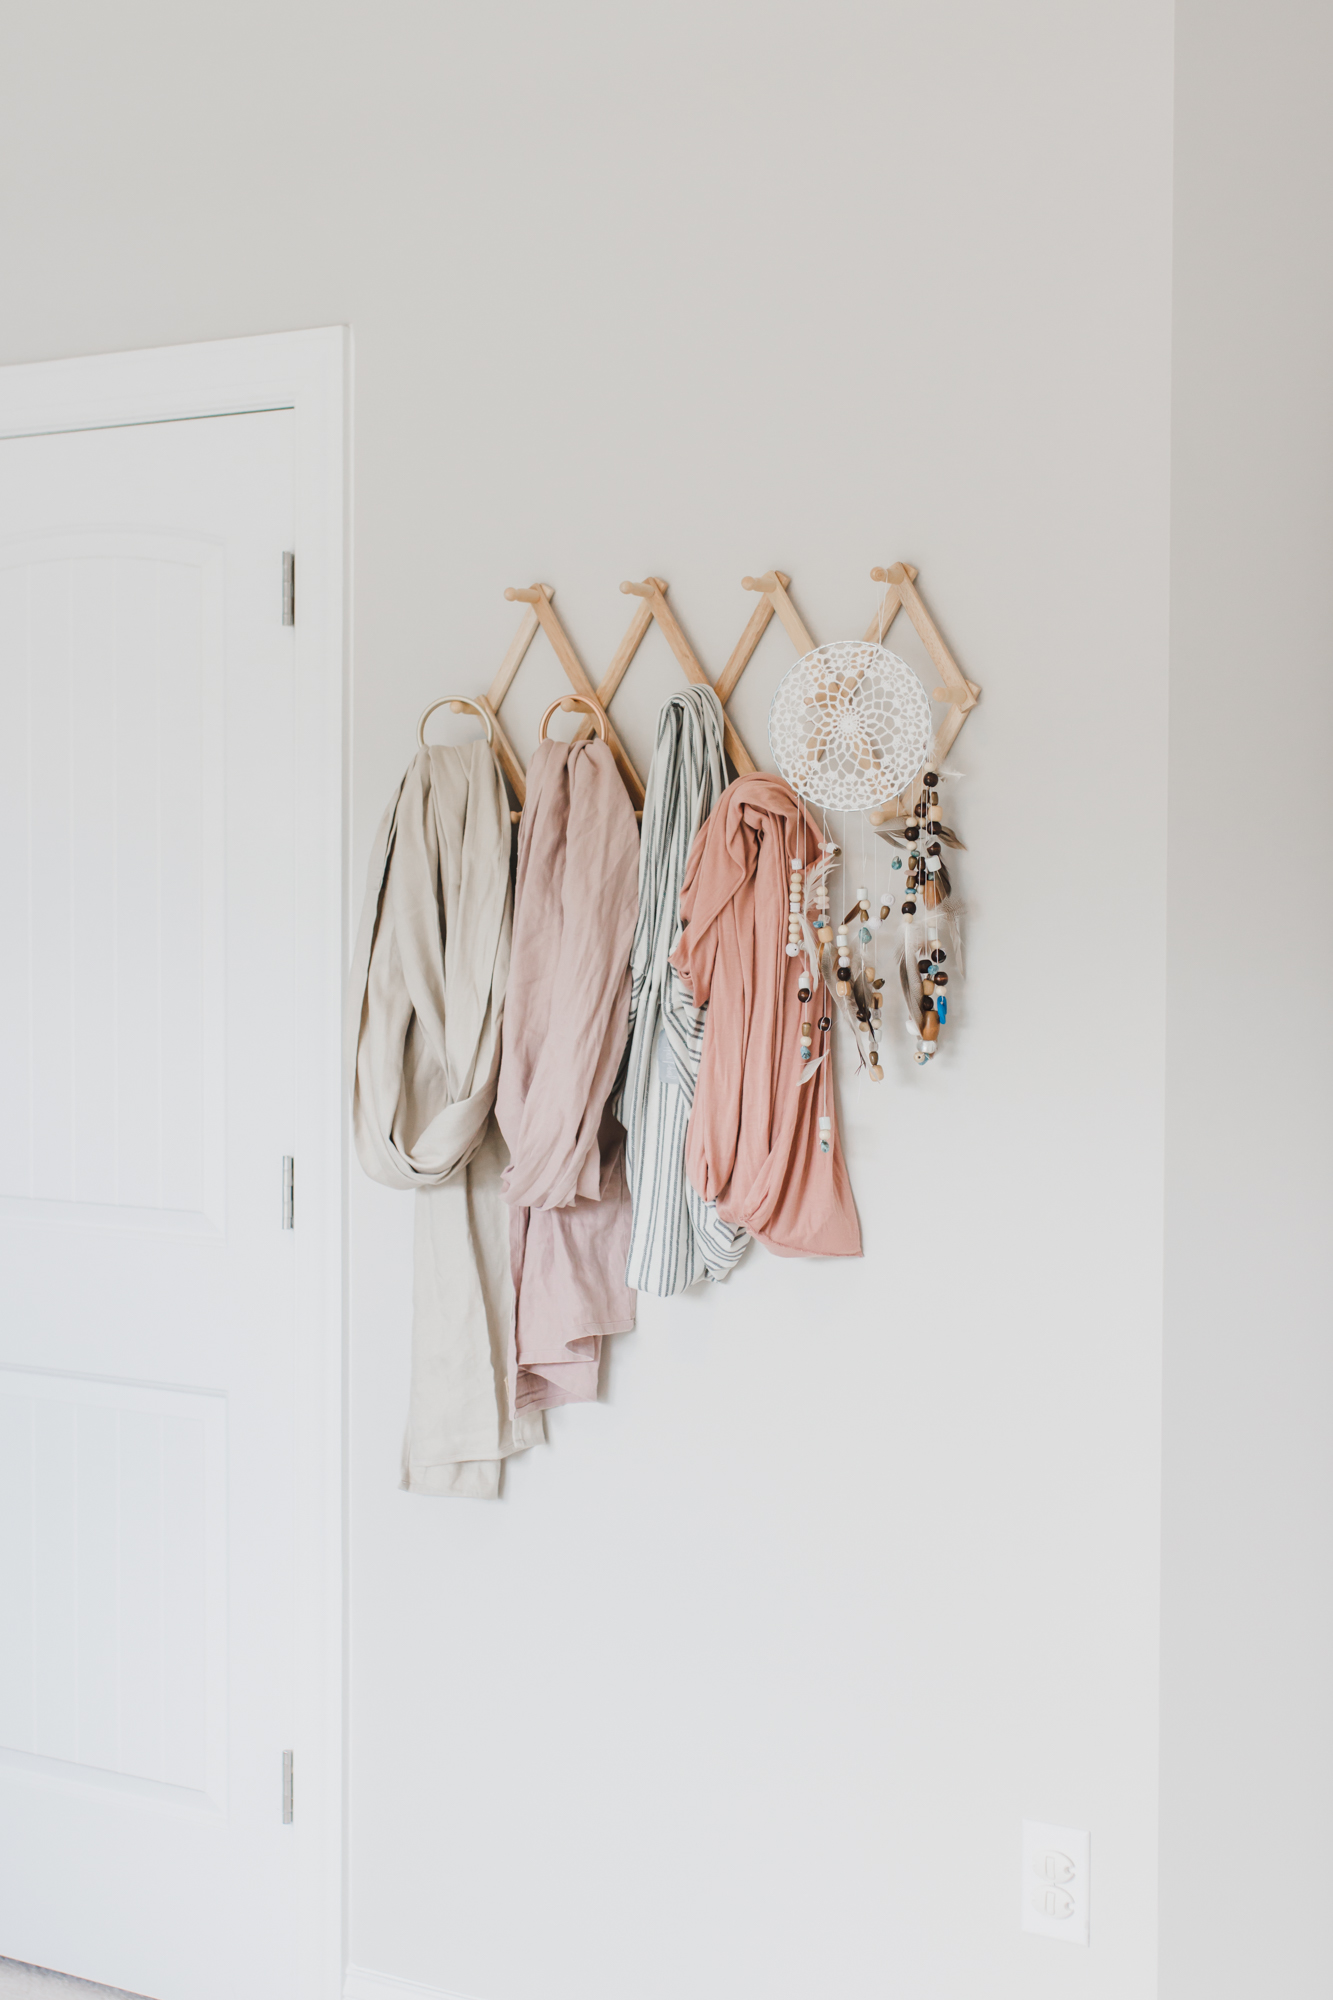 Step inside this gorgeous baby girl's nursery in soft blue and blush tones. Click through for the details. #nursery #babygirl #girlsroom #girlsnursery #girlnursery #girlroom #baby #newbaby | glitterinc.com | @glitterinc